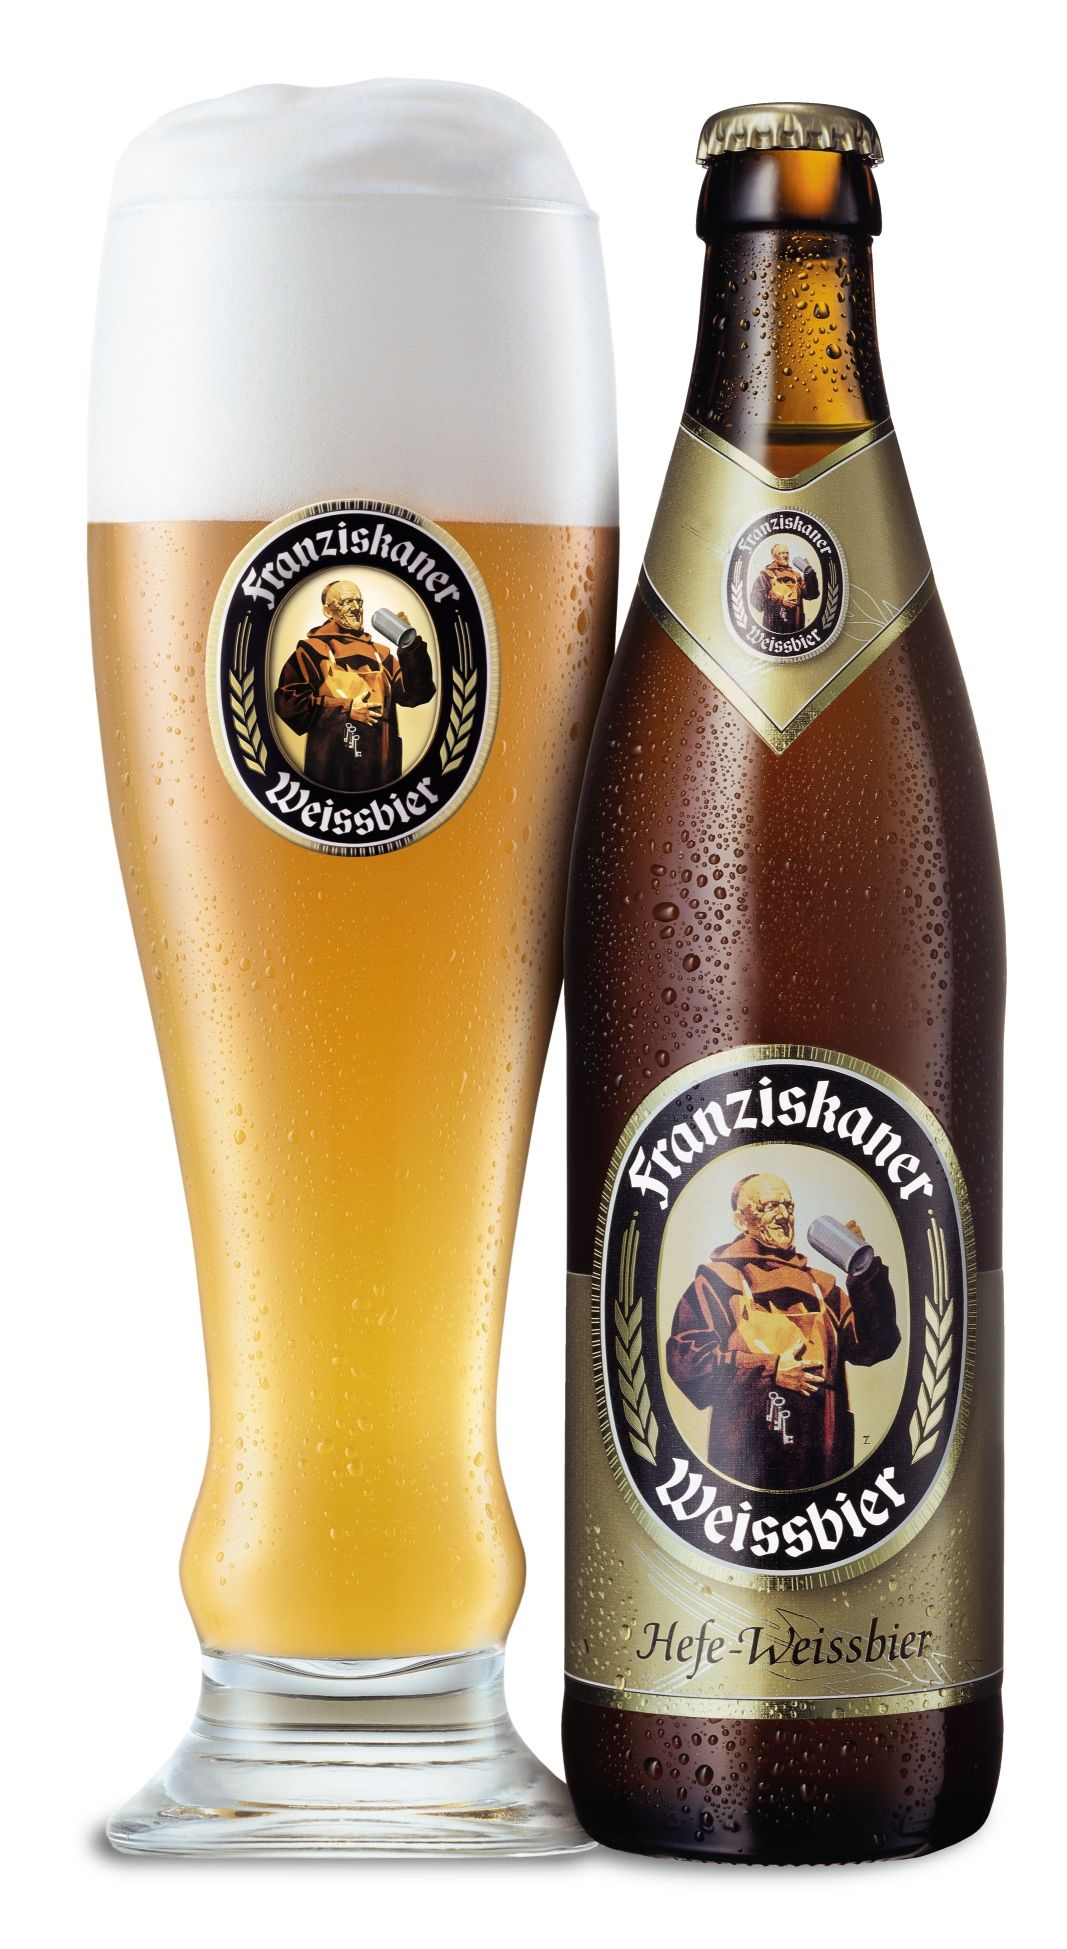 Bicchieri Hoegaarden My Favorite Beer Franziskaner Weissbier Mix It With Lemonade